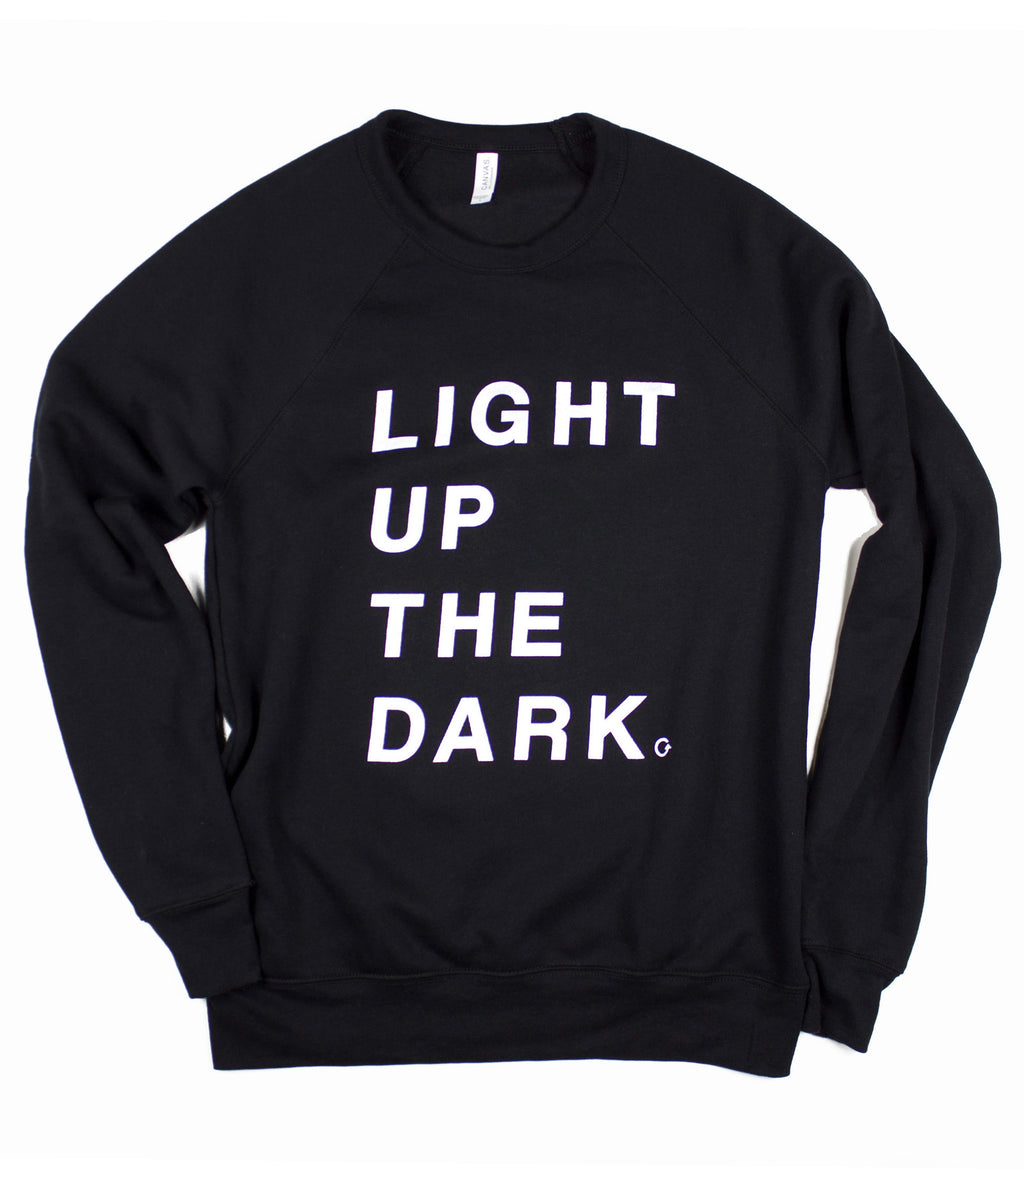 LIGHT UP THE DARK BLACK CREWNECK SWEATSHIRT